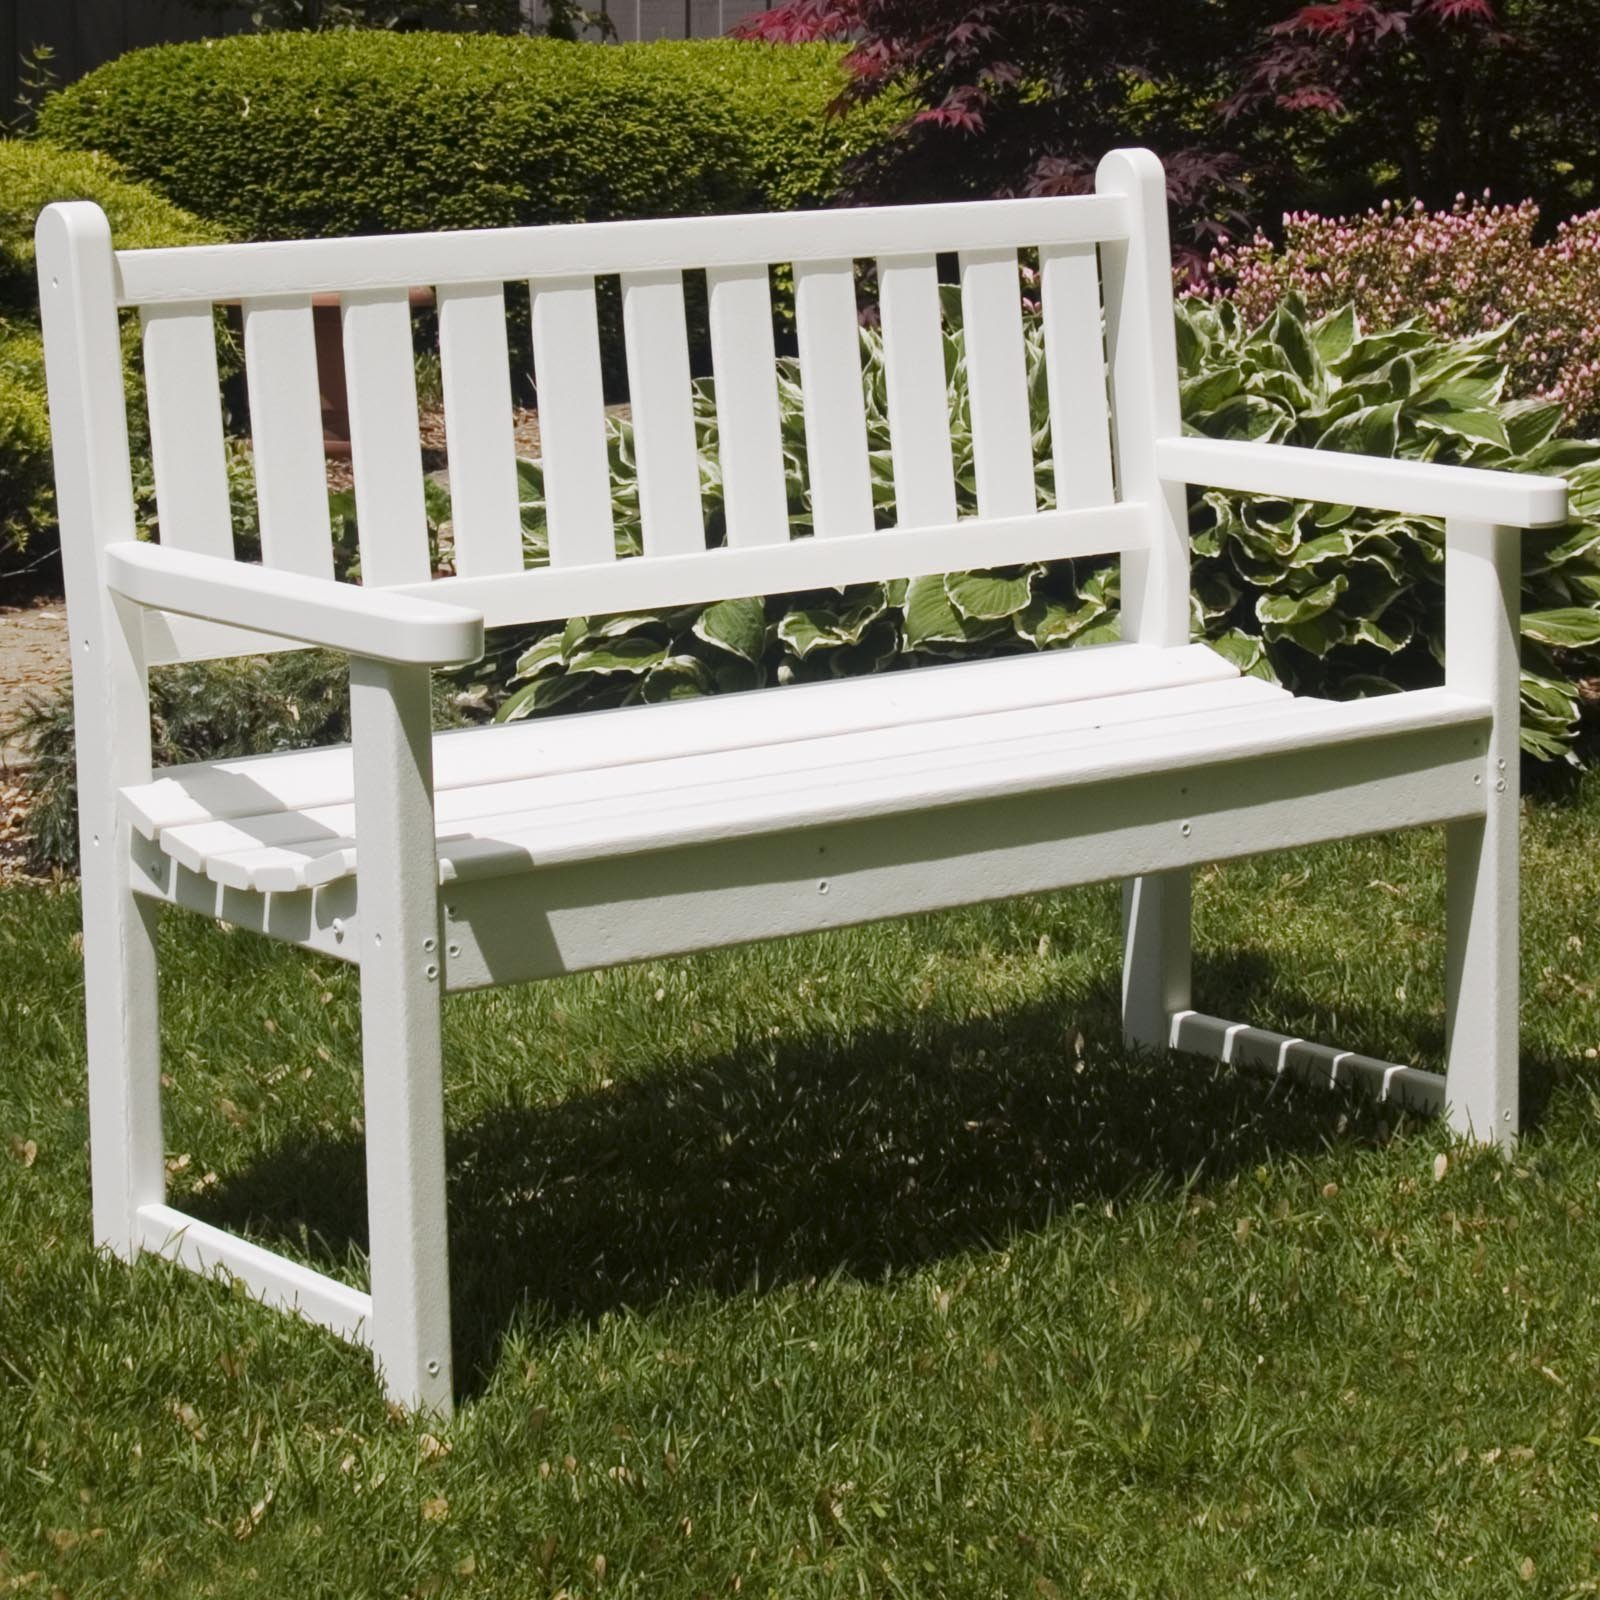 Plastic garden furniture furniture Plastic outdoor furniture